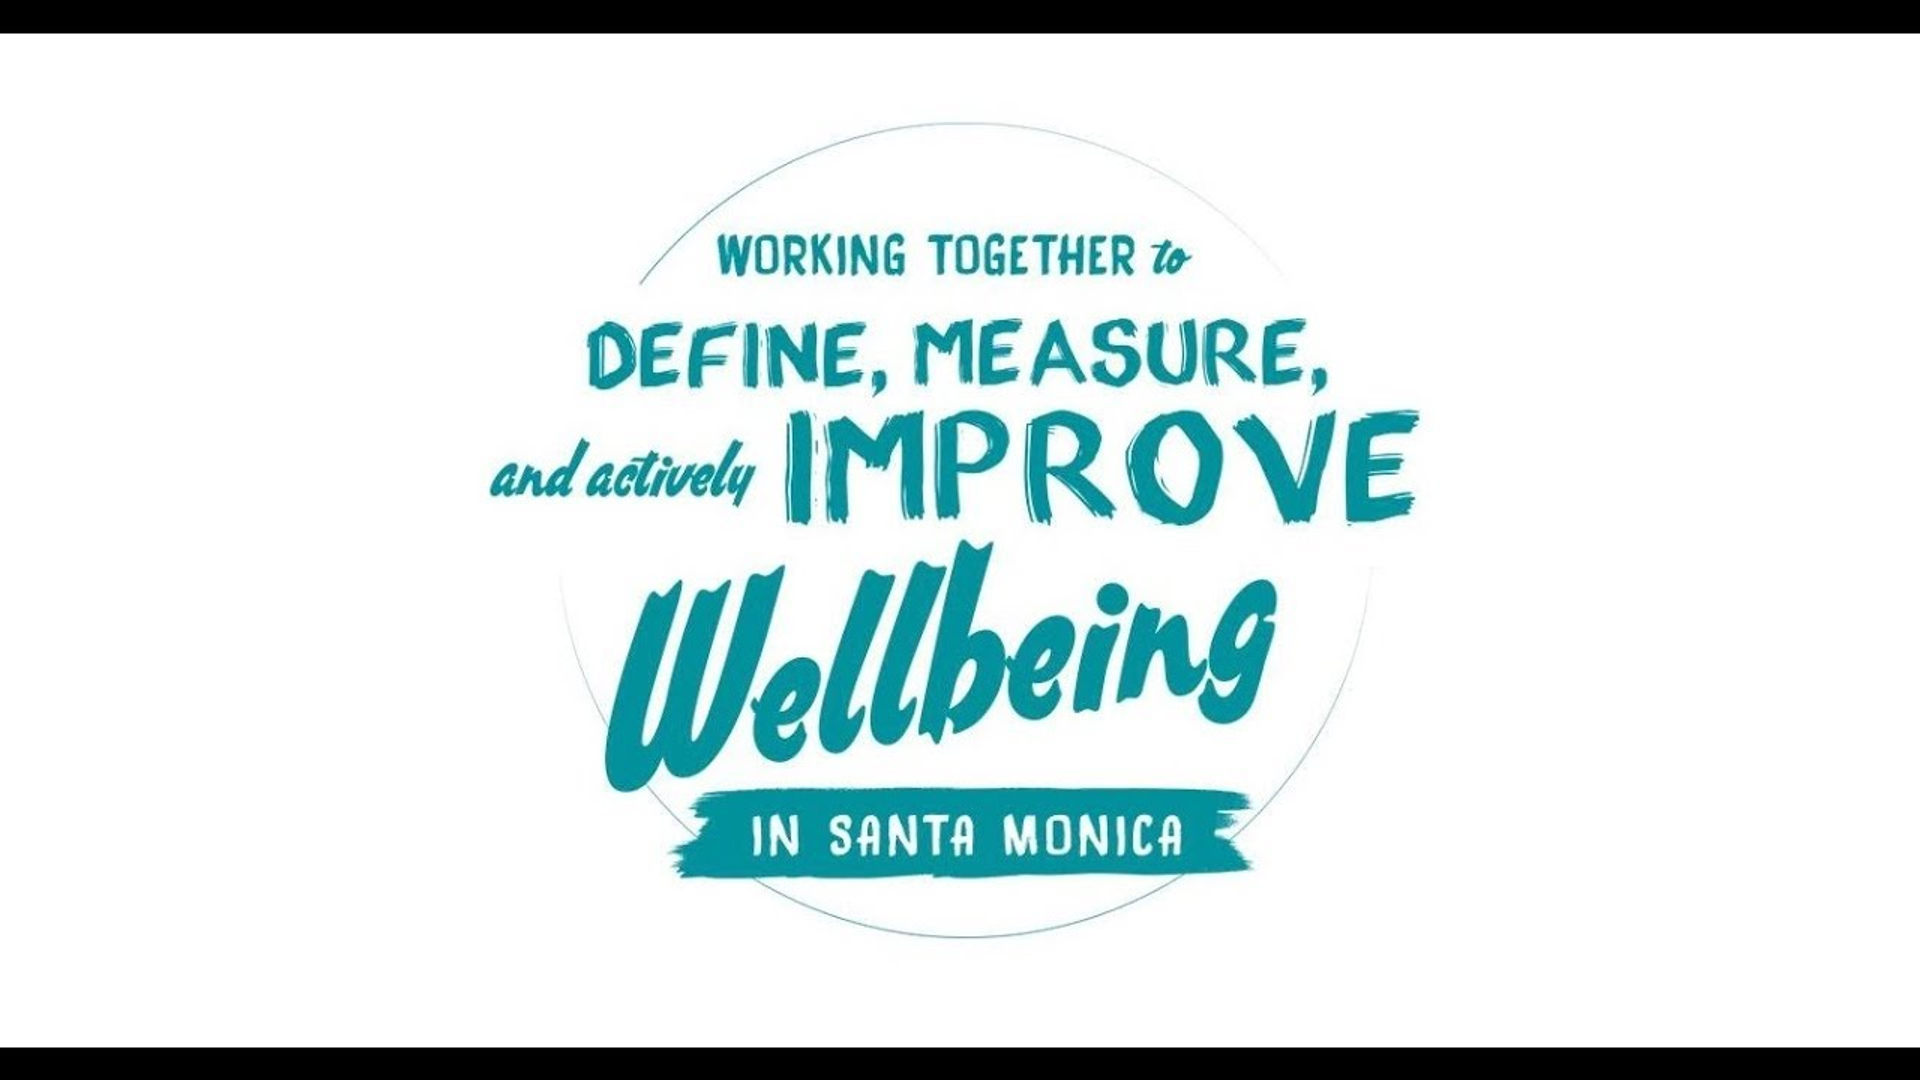 Santa Monica Wellbeing Project